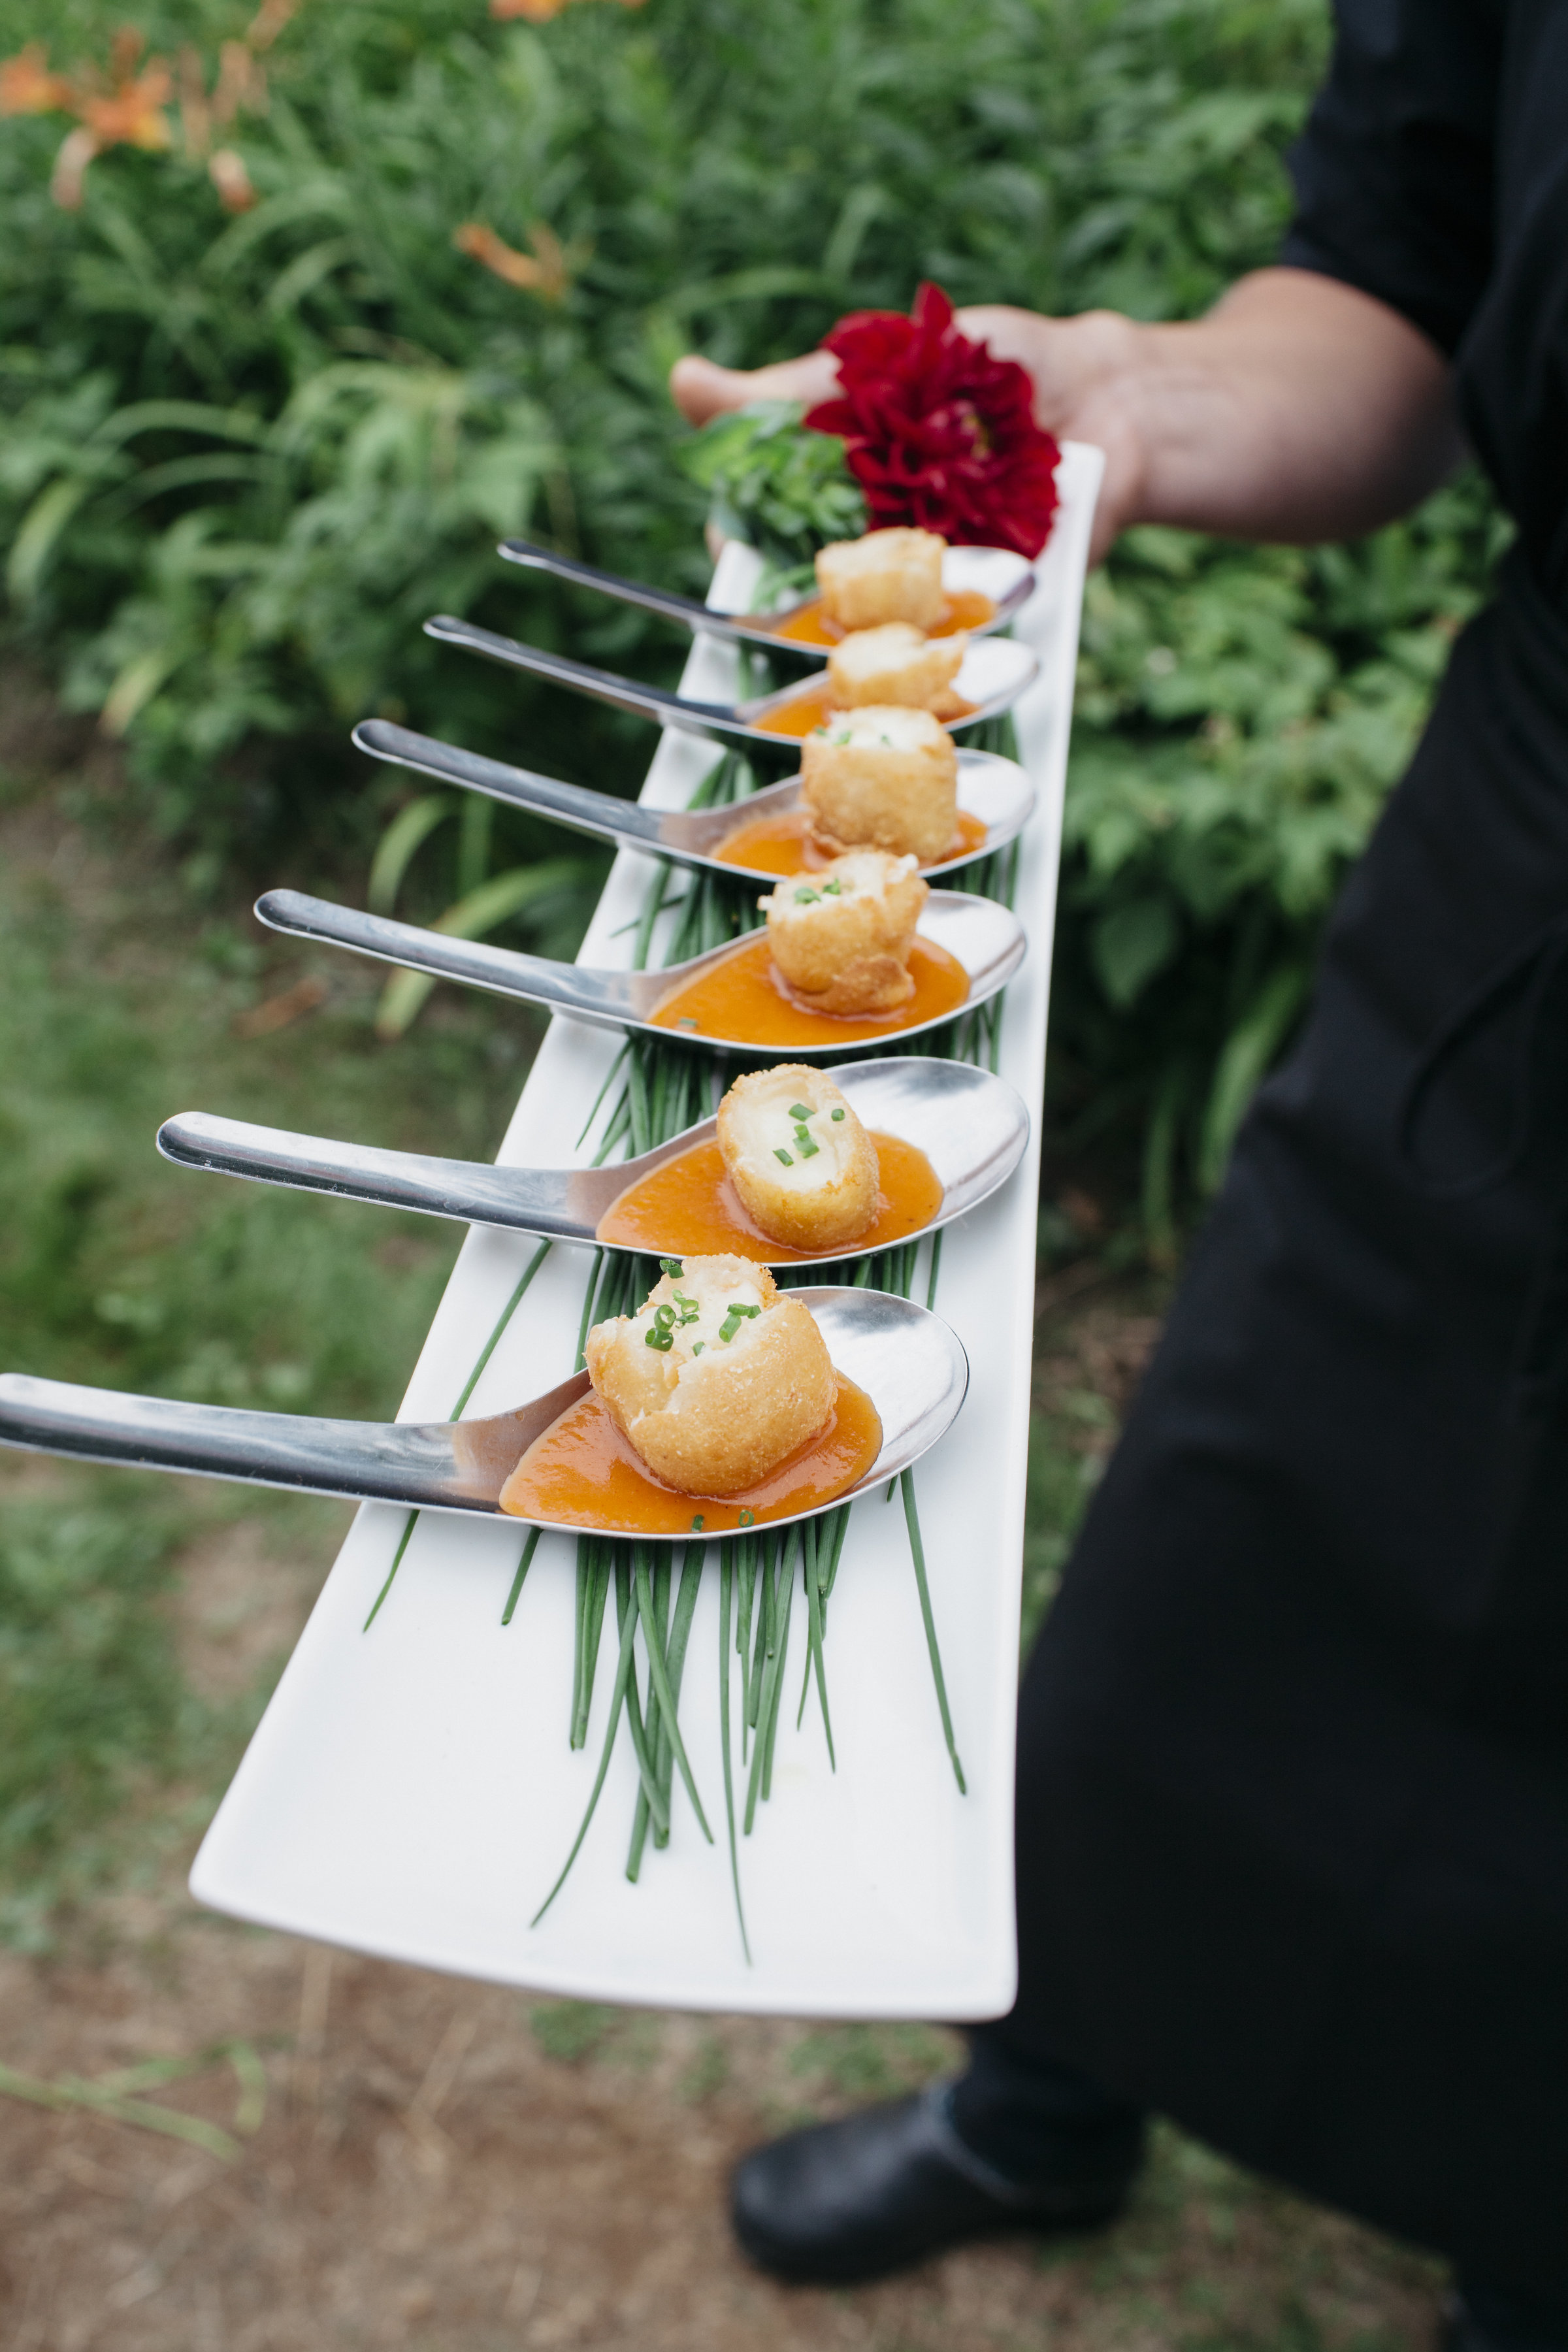 Grilled Cheese Dumplings with Tomato Soup  ©Leah Fisher Photography